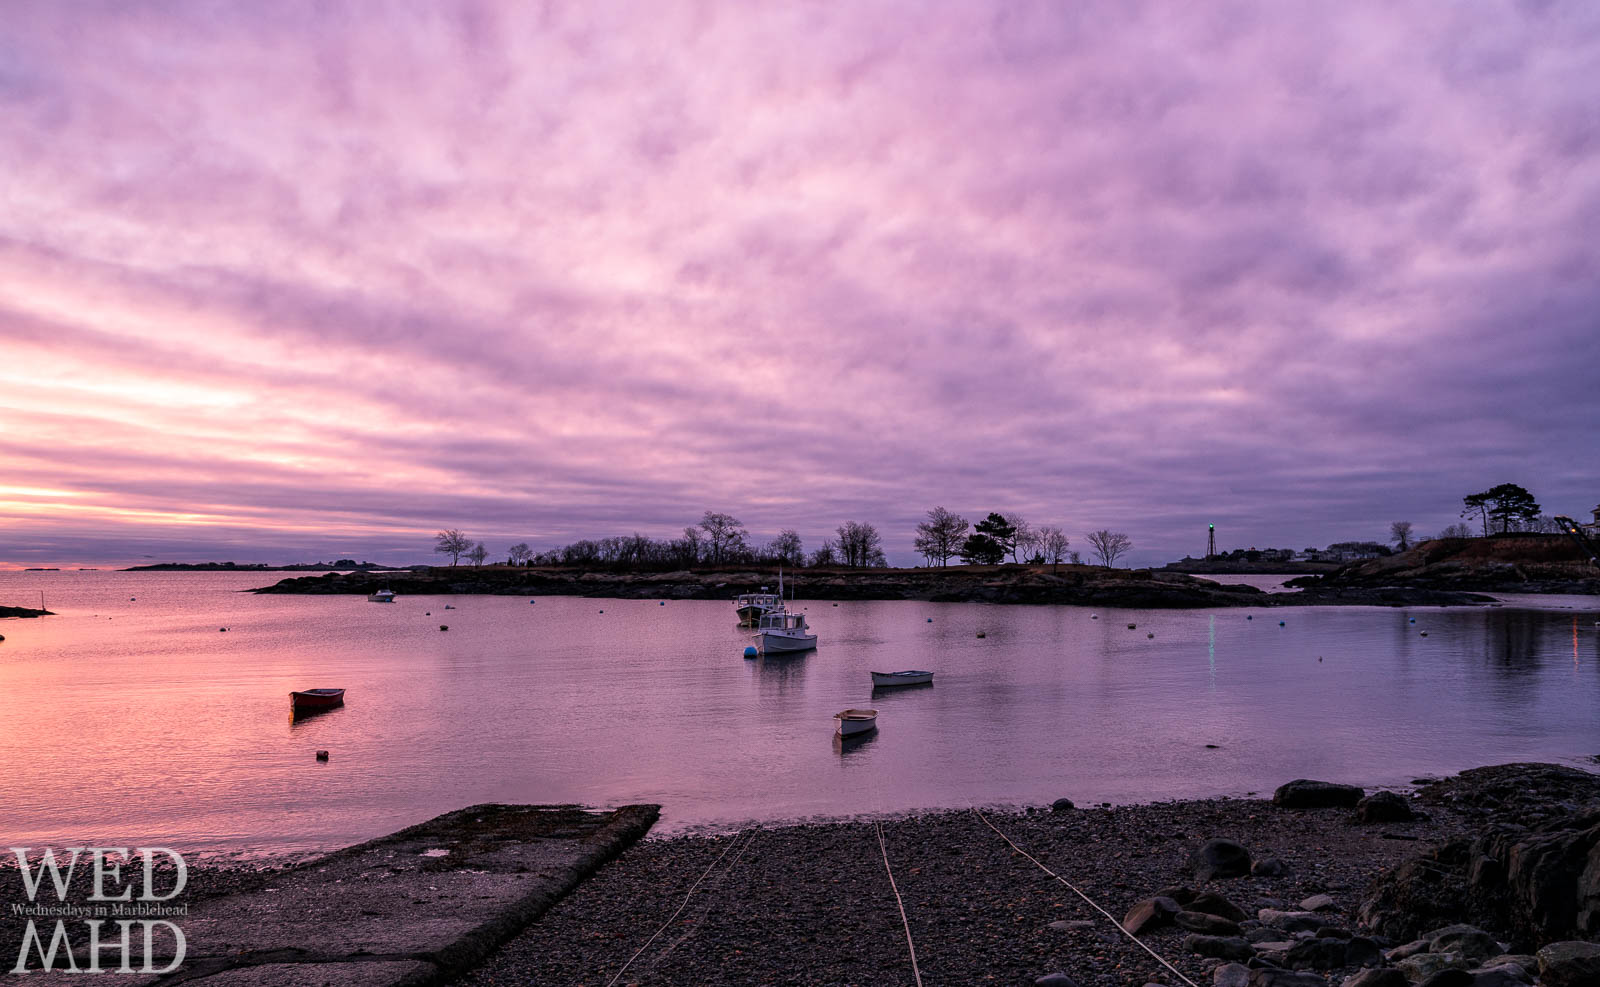 I decided to kickstart the day by heading to little harbor for a dawn shoot. Today marks the first day of my Kickstarter campaign to help fund my next Marblehead book.